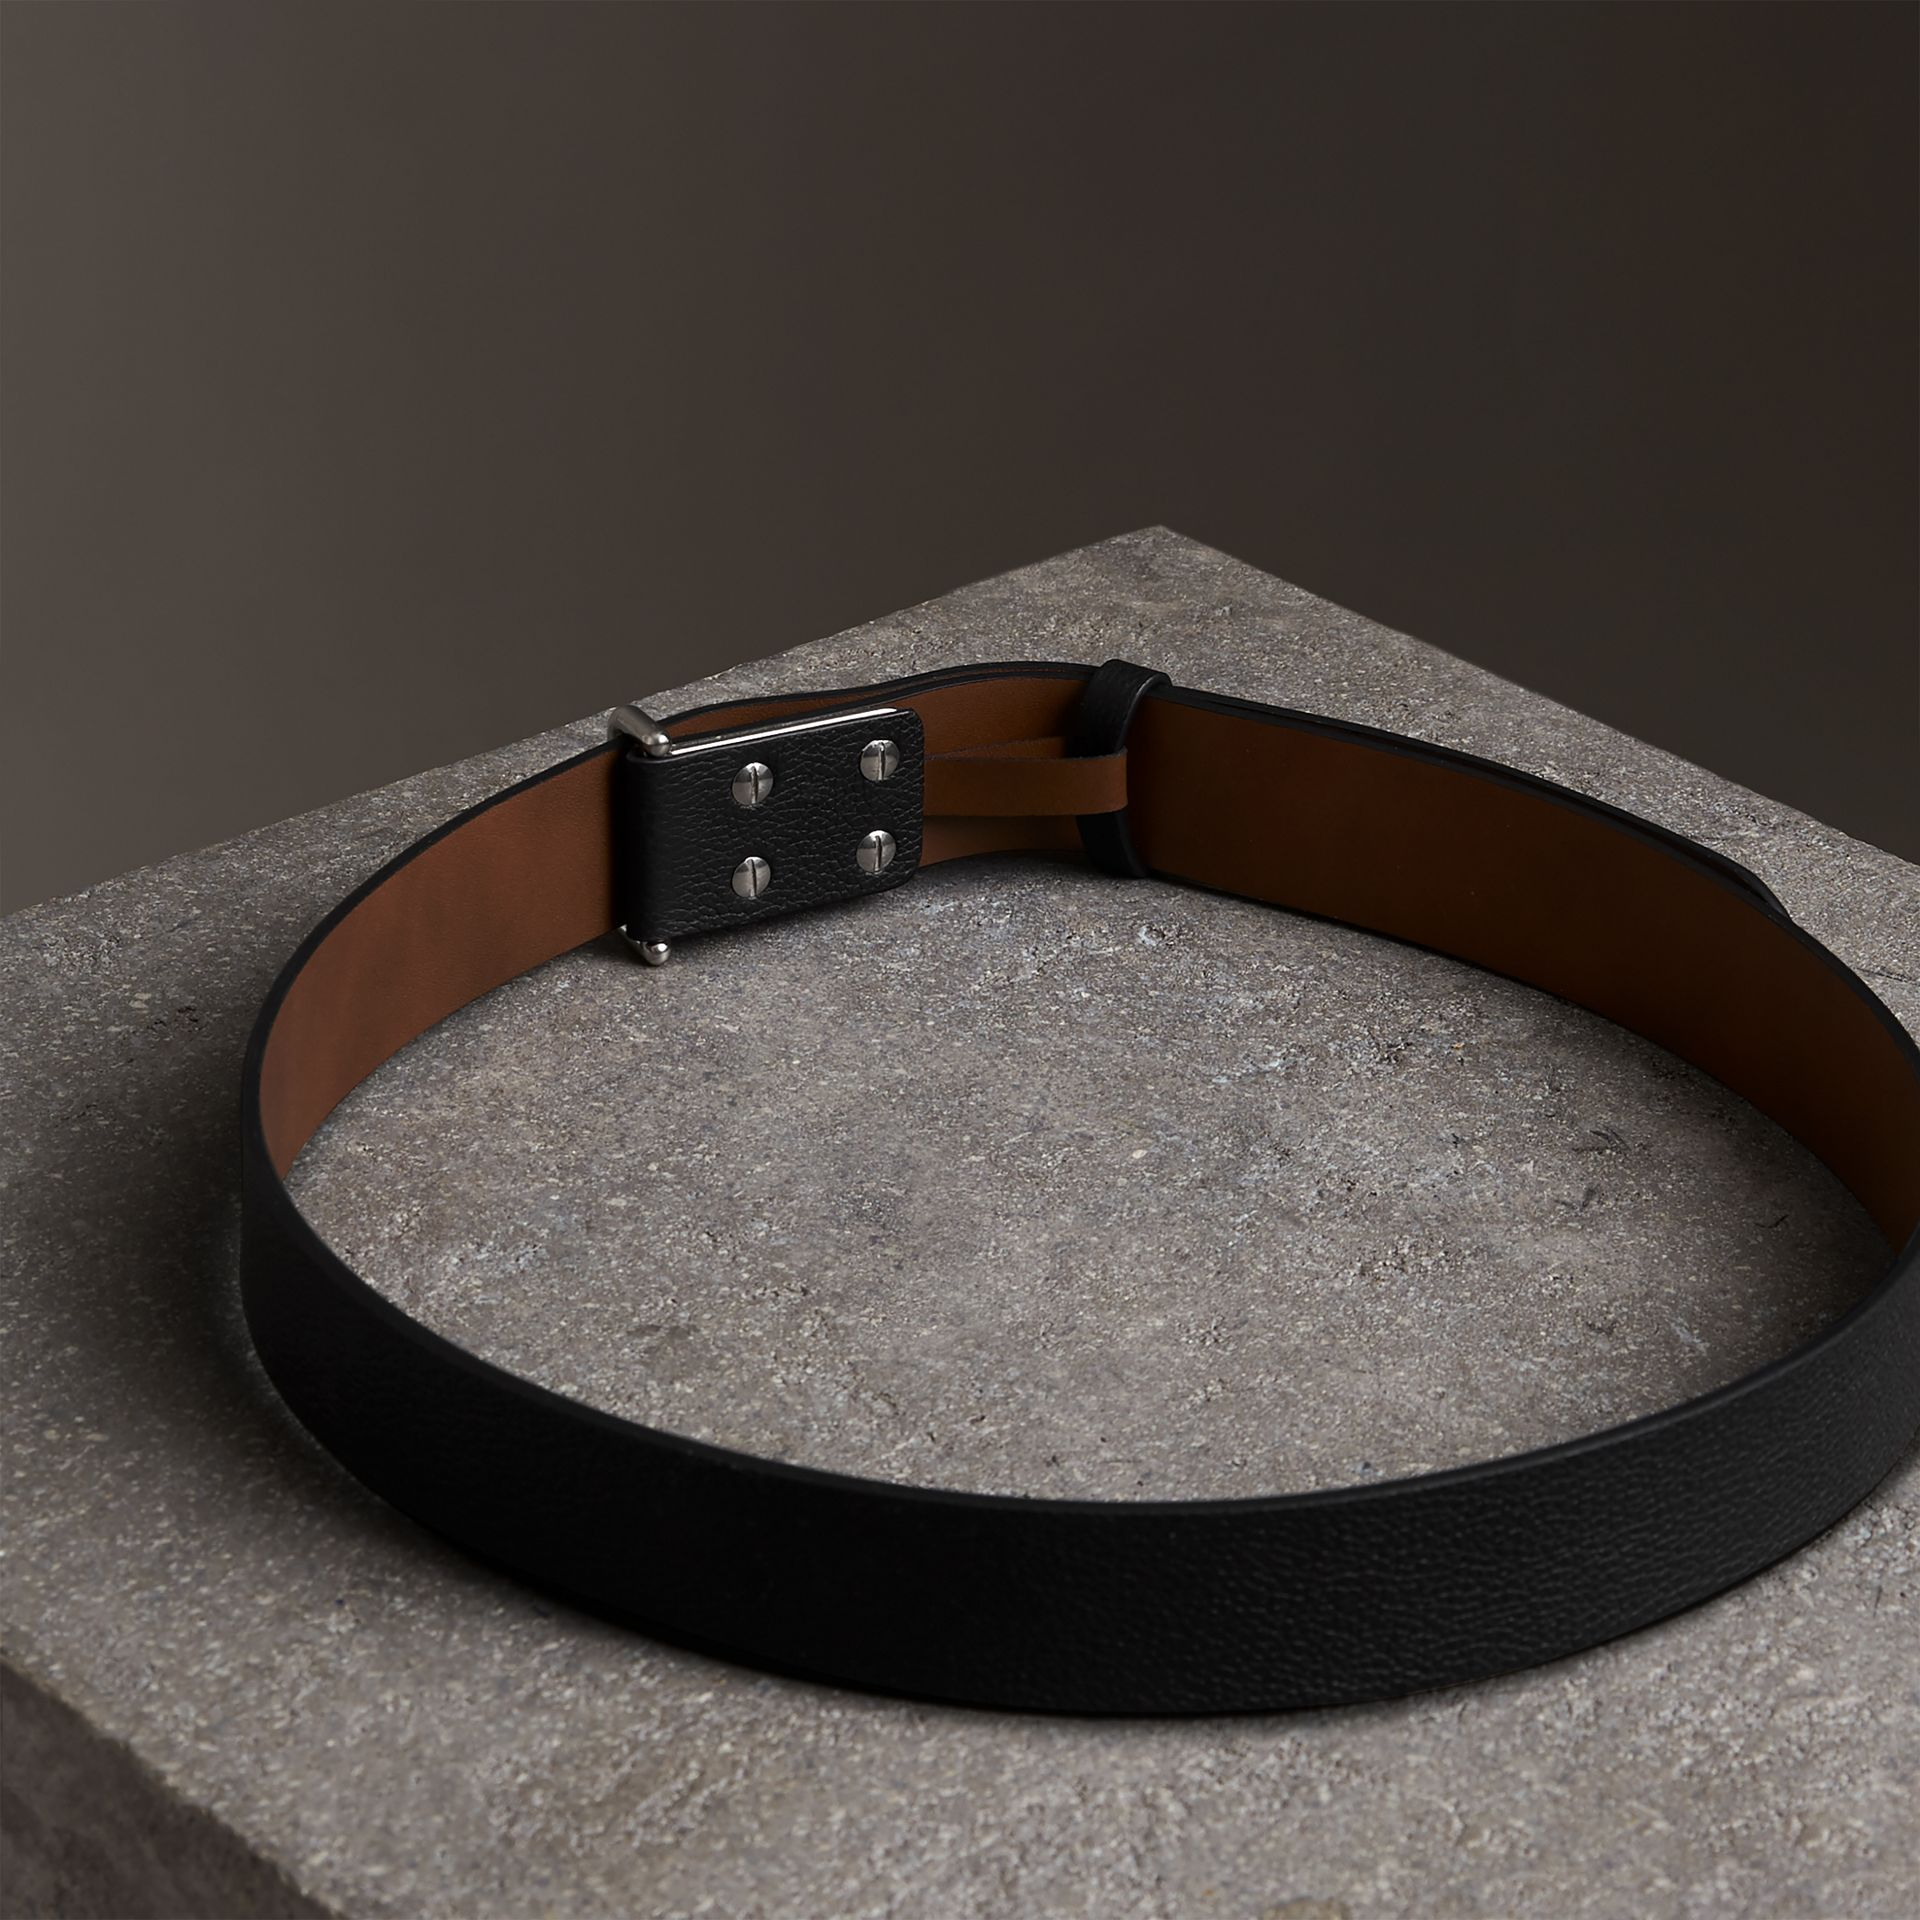 Push-Stud Grainy Leather Belt in Black - Men | Burberry Singapore - gallery image 3